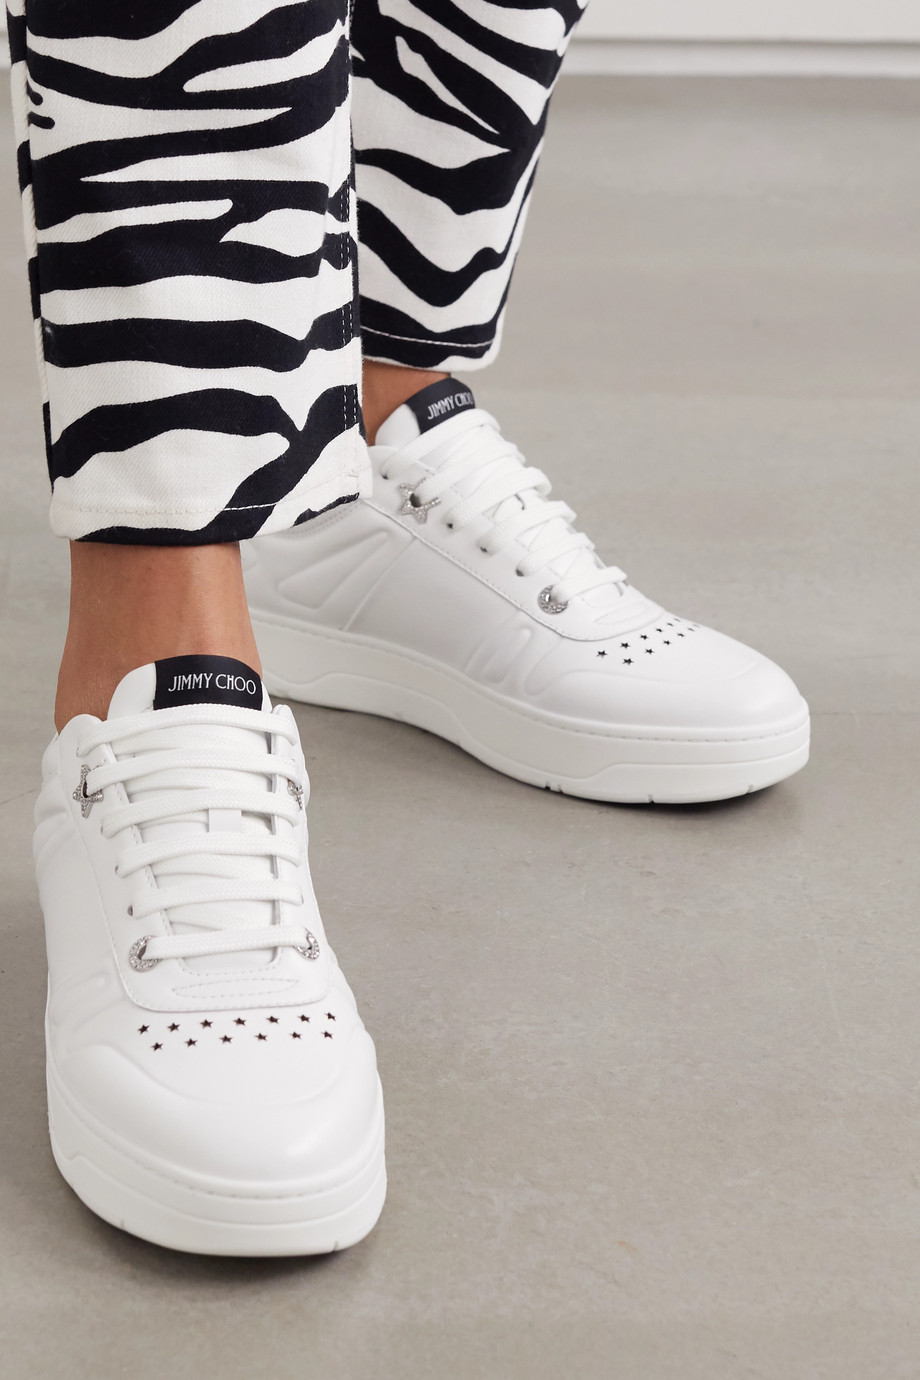 Jimmy Choo Hawaii crystal-embellished perforated leather sneakers